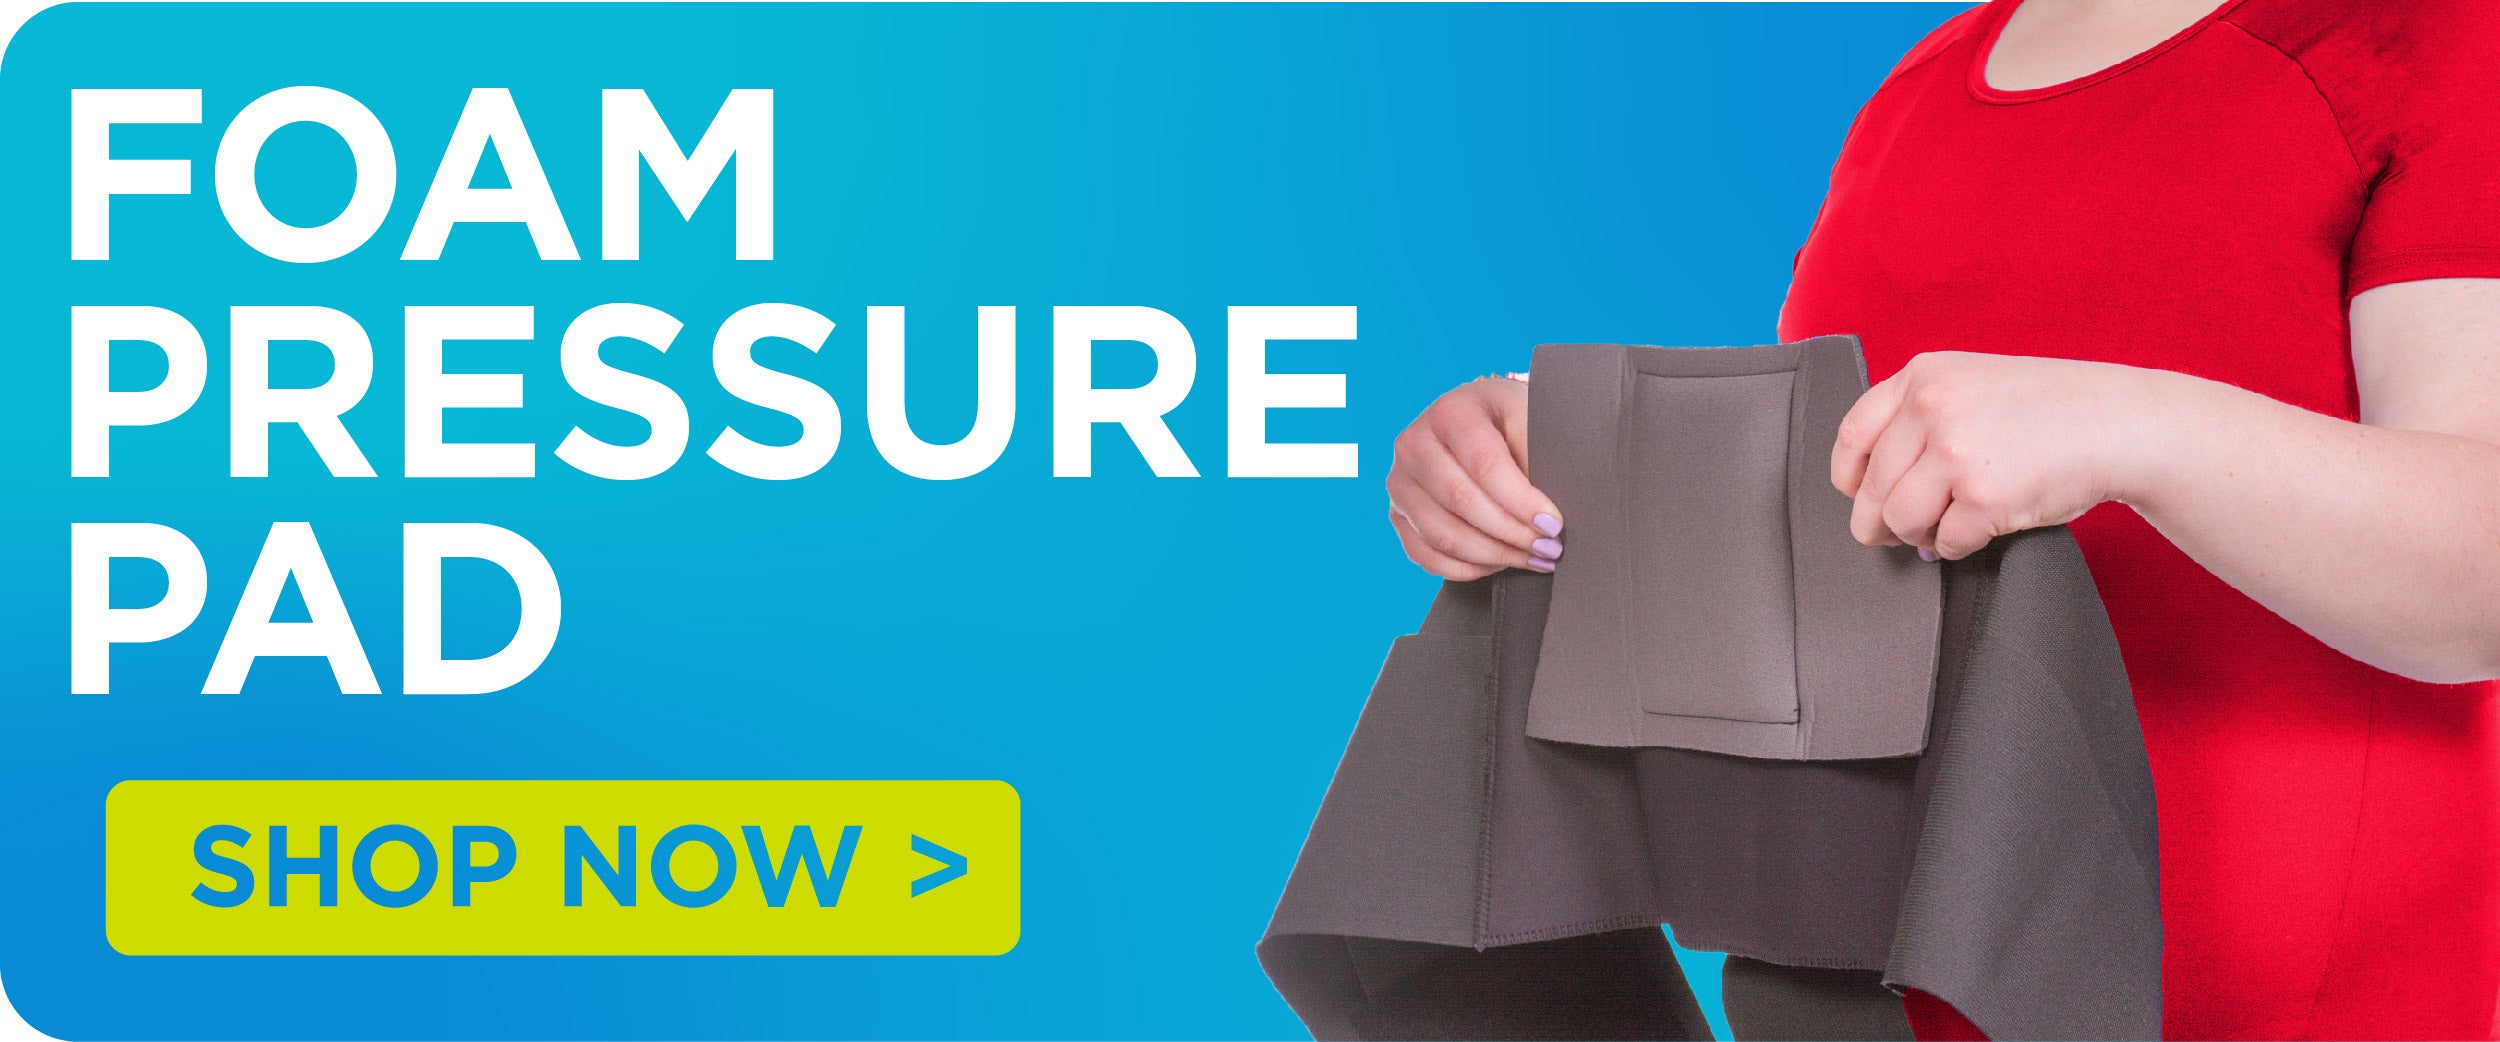 purchase a foam pressure pad for your lower back brace